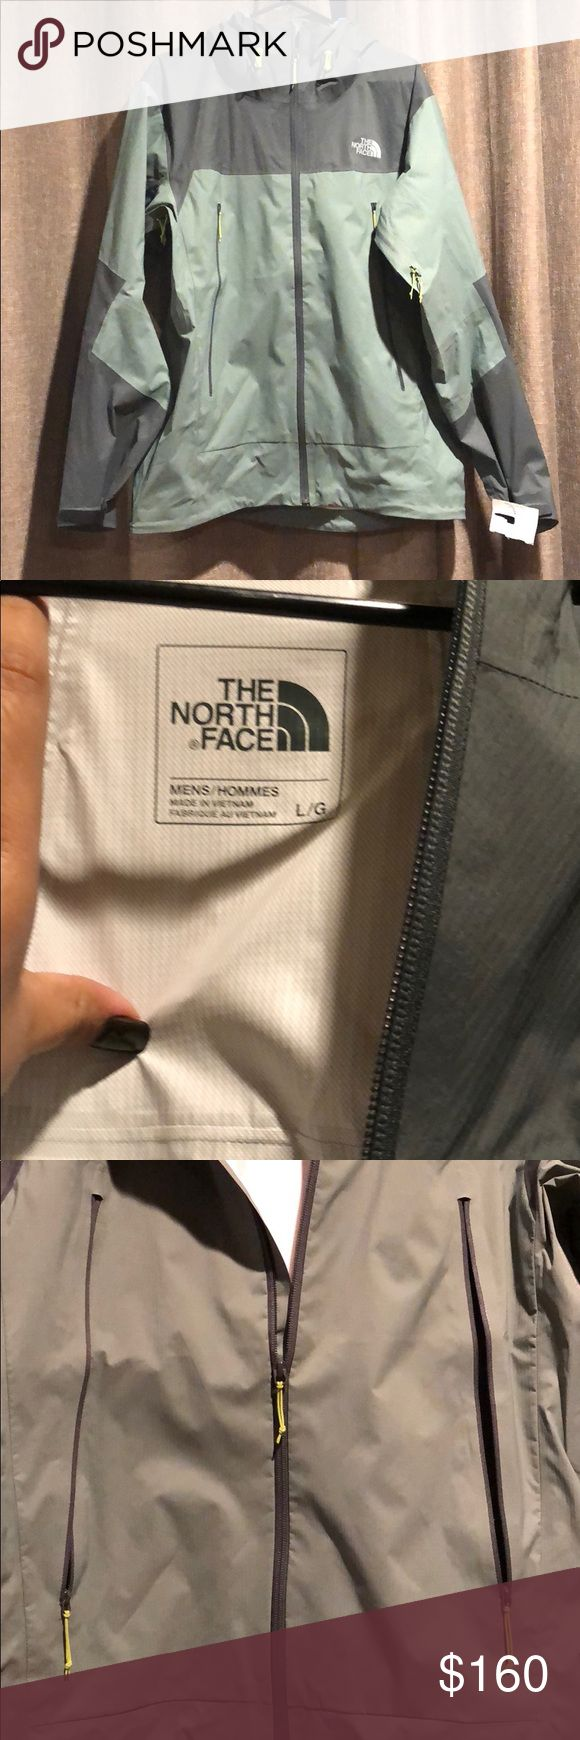 Brand new The North Face mens jacket Brand new The North Face mens jacket. Perfect for the cold weather. Beautiful color. Never worn The North Face Jackets & Coats